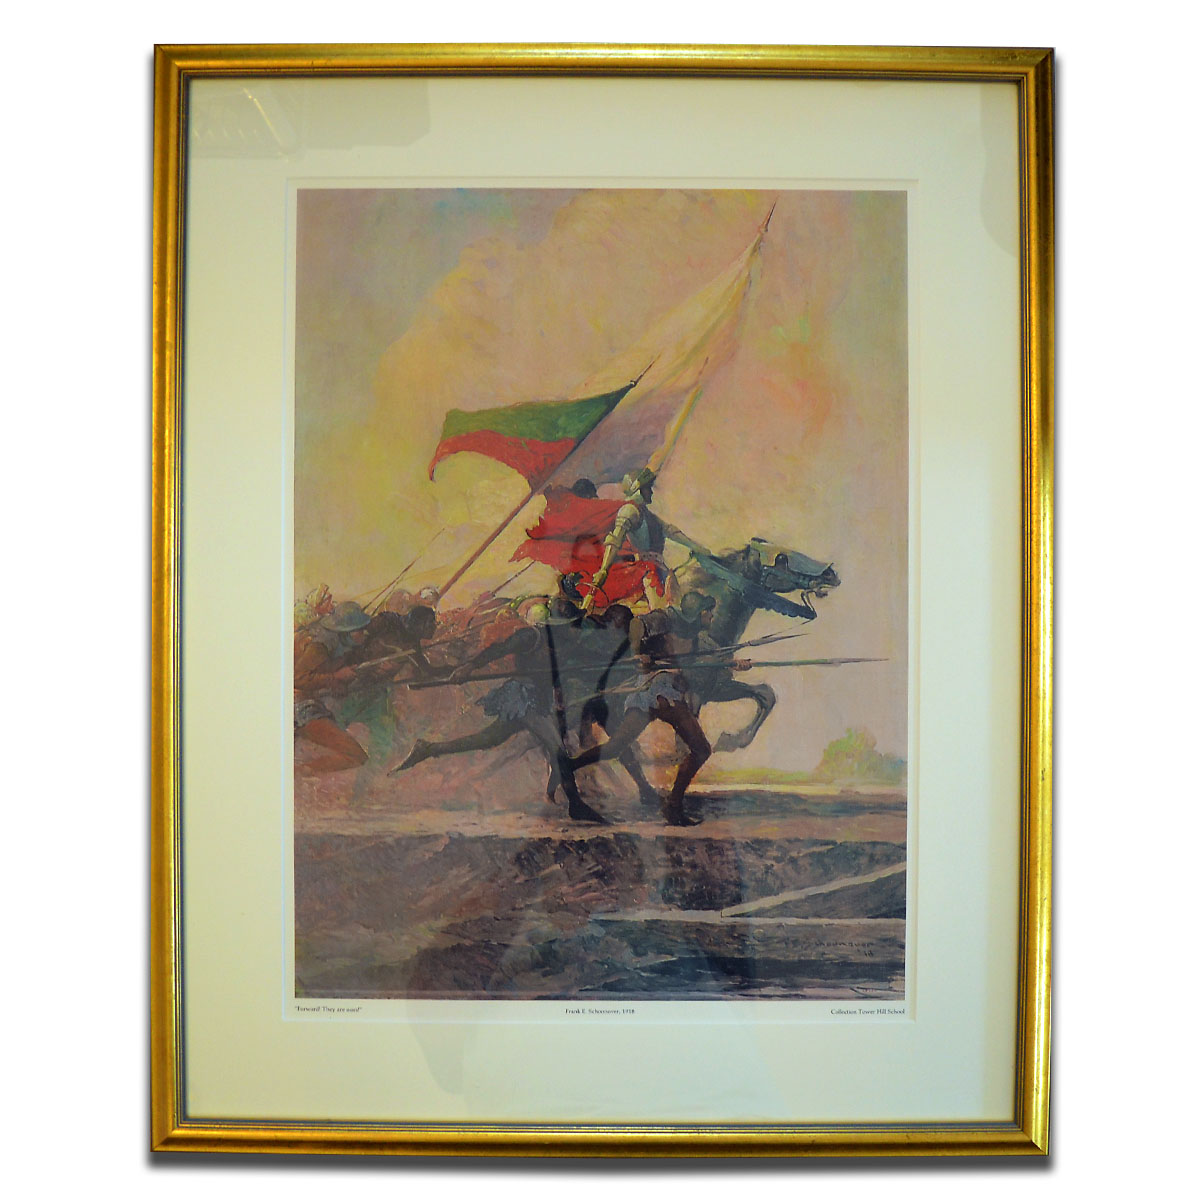 """Framed Limited Edition Print - This reproduction of the Frank E. Schoonover oil painting, """"Forward! They are ours!"""" was just one of 1,000 commissioned in 1985 by the Princeton Press. Generously contributed to the auction by the Lincoln Family, this framed piece measures 27"""" x 36"""" and makes a statement on any wall in the house."""